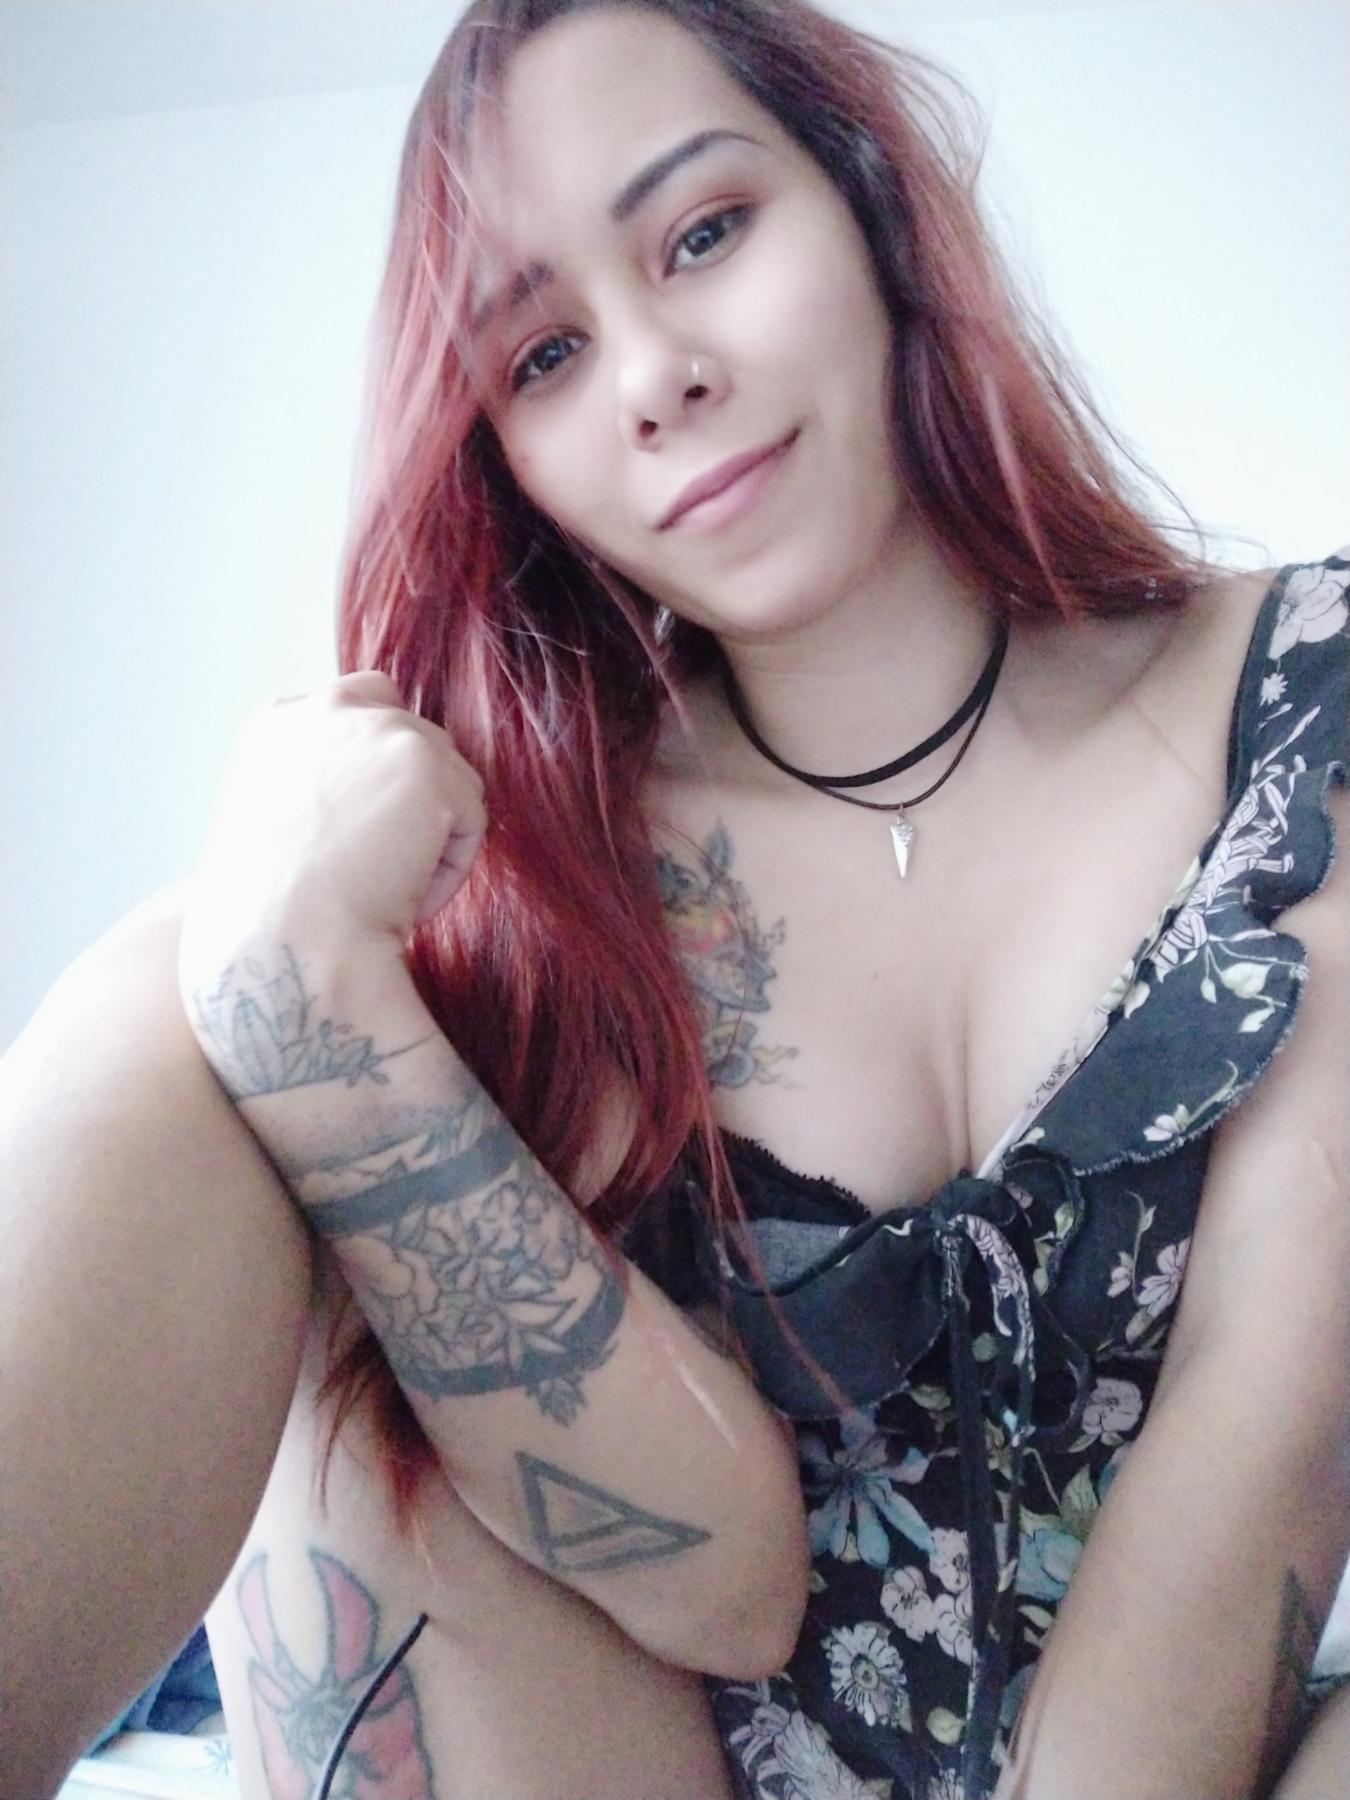 Picture with tags: Tattoo, Real, Girl